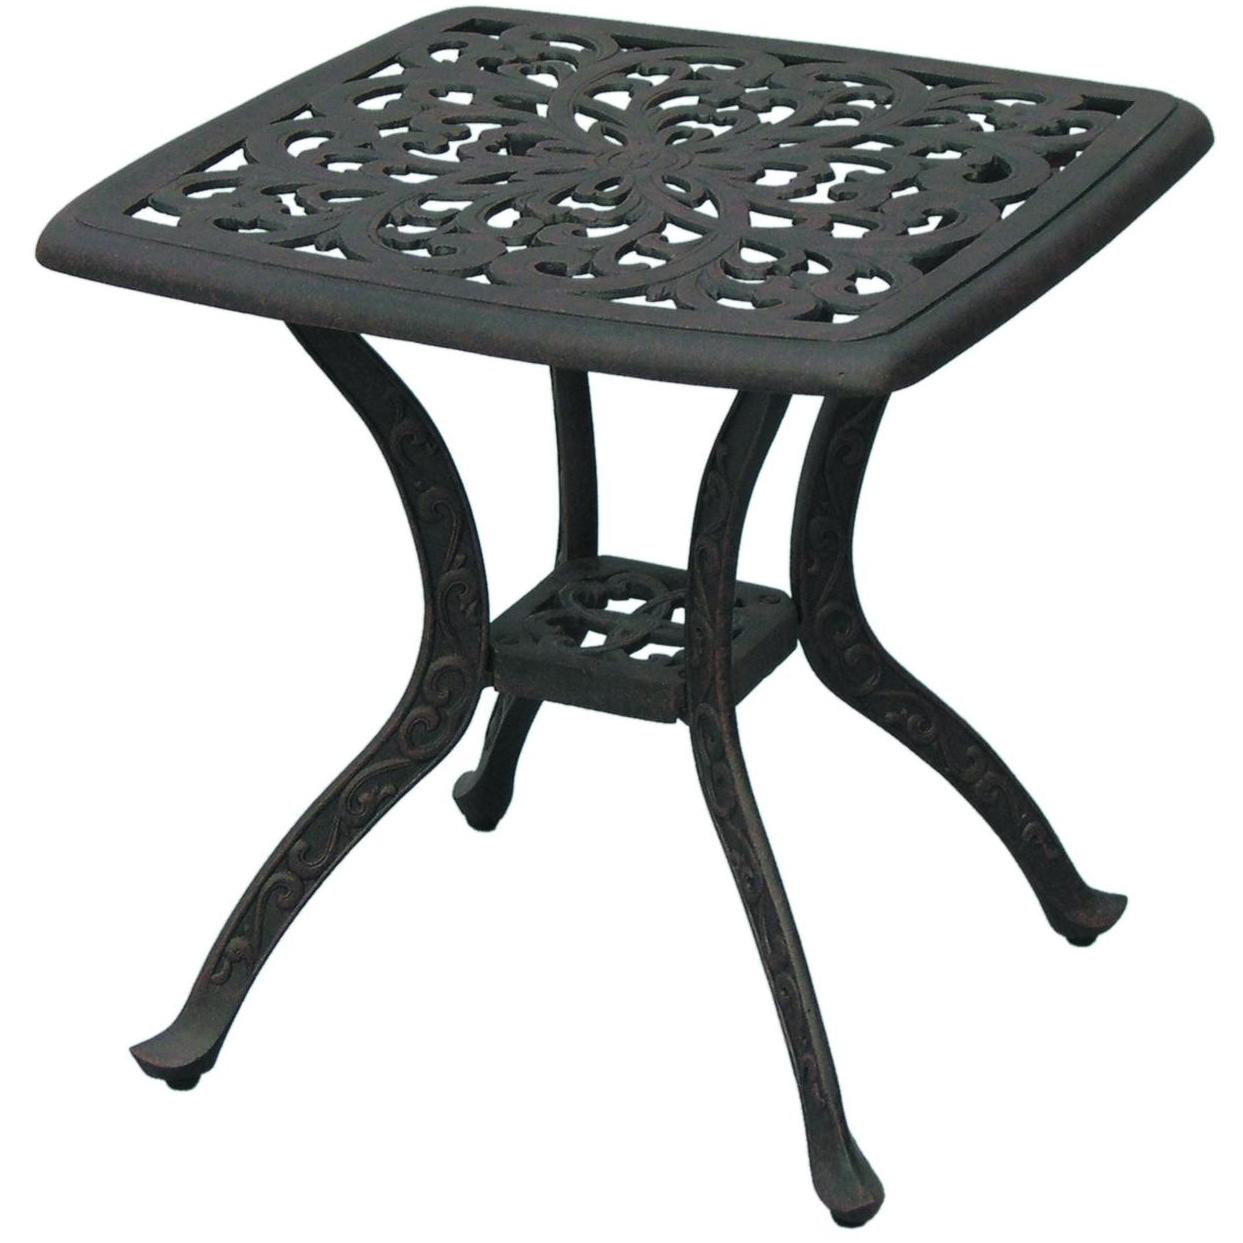 darlee series aluminum patio end table the outdoor accent tables chairside with usb antique nautical lamps drum throne top bedroom furniture edmonton metal trestle gallerie dining